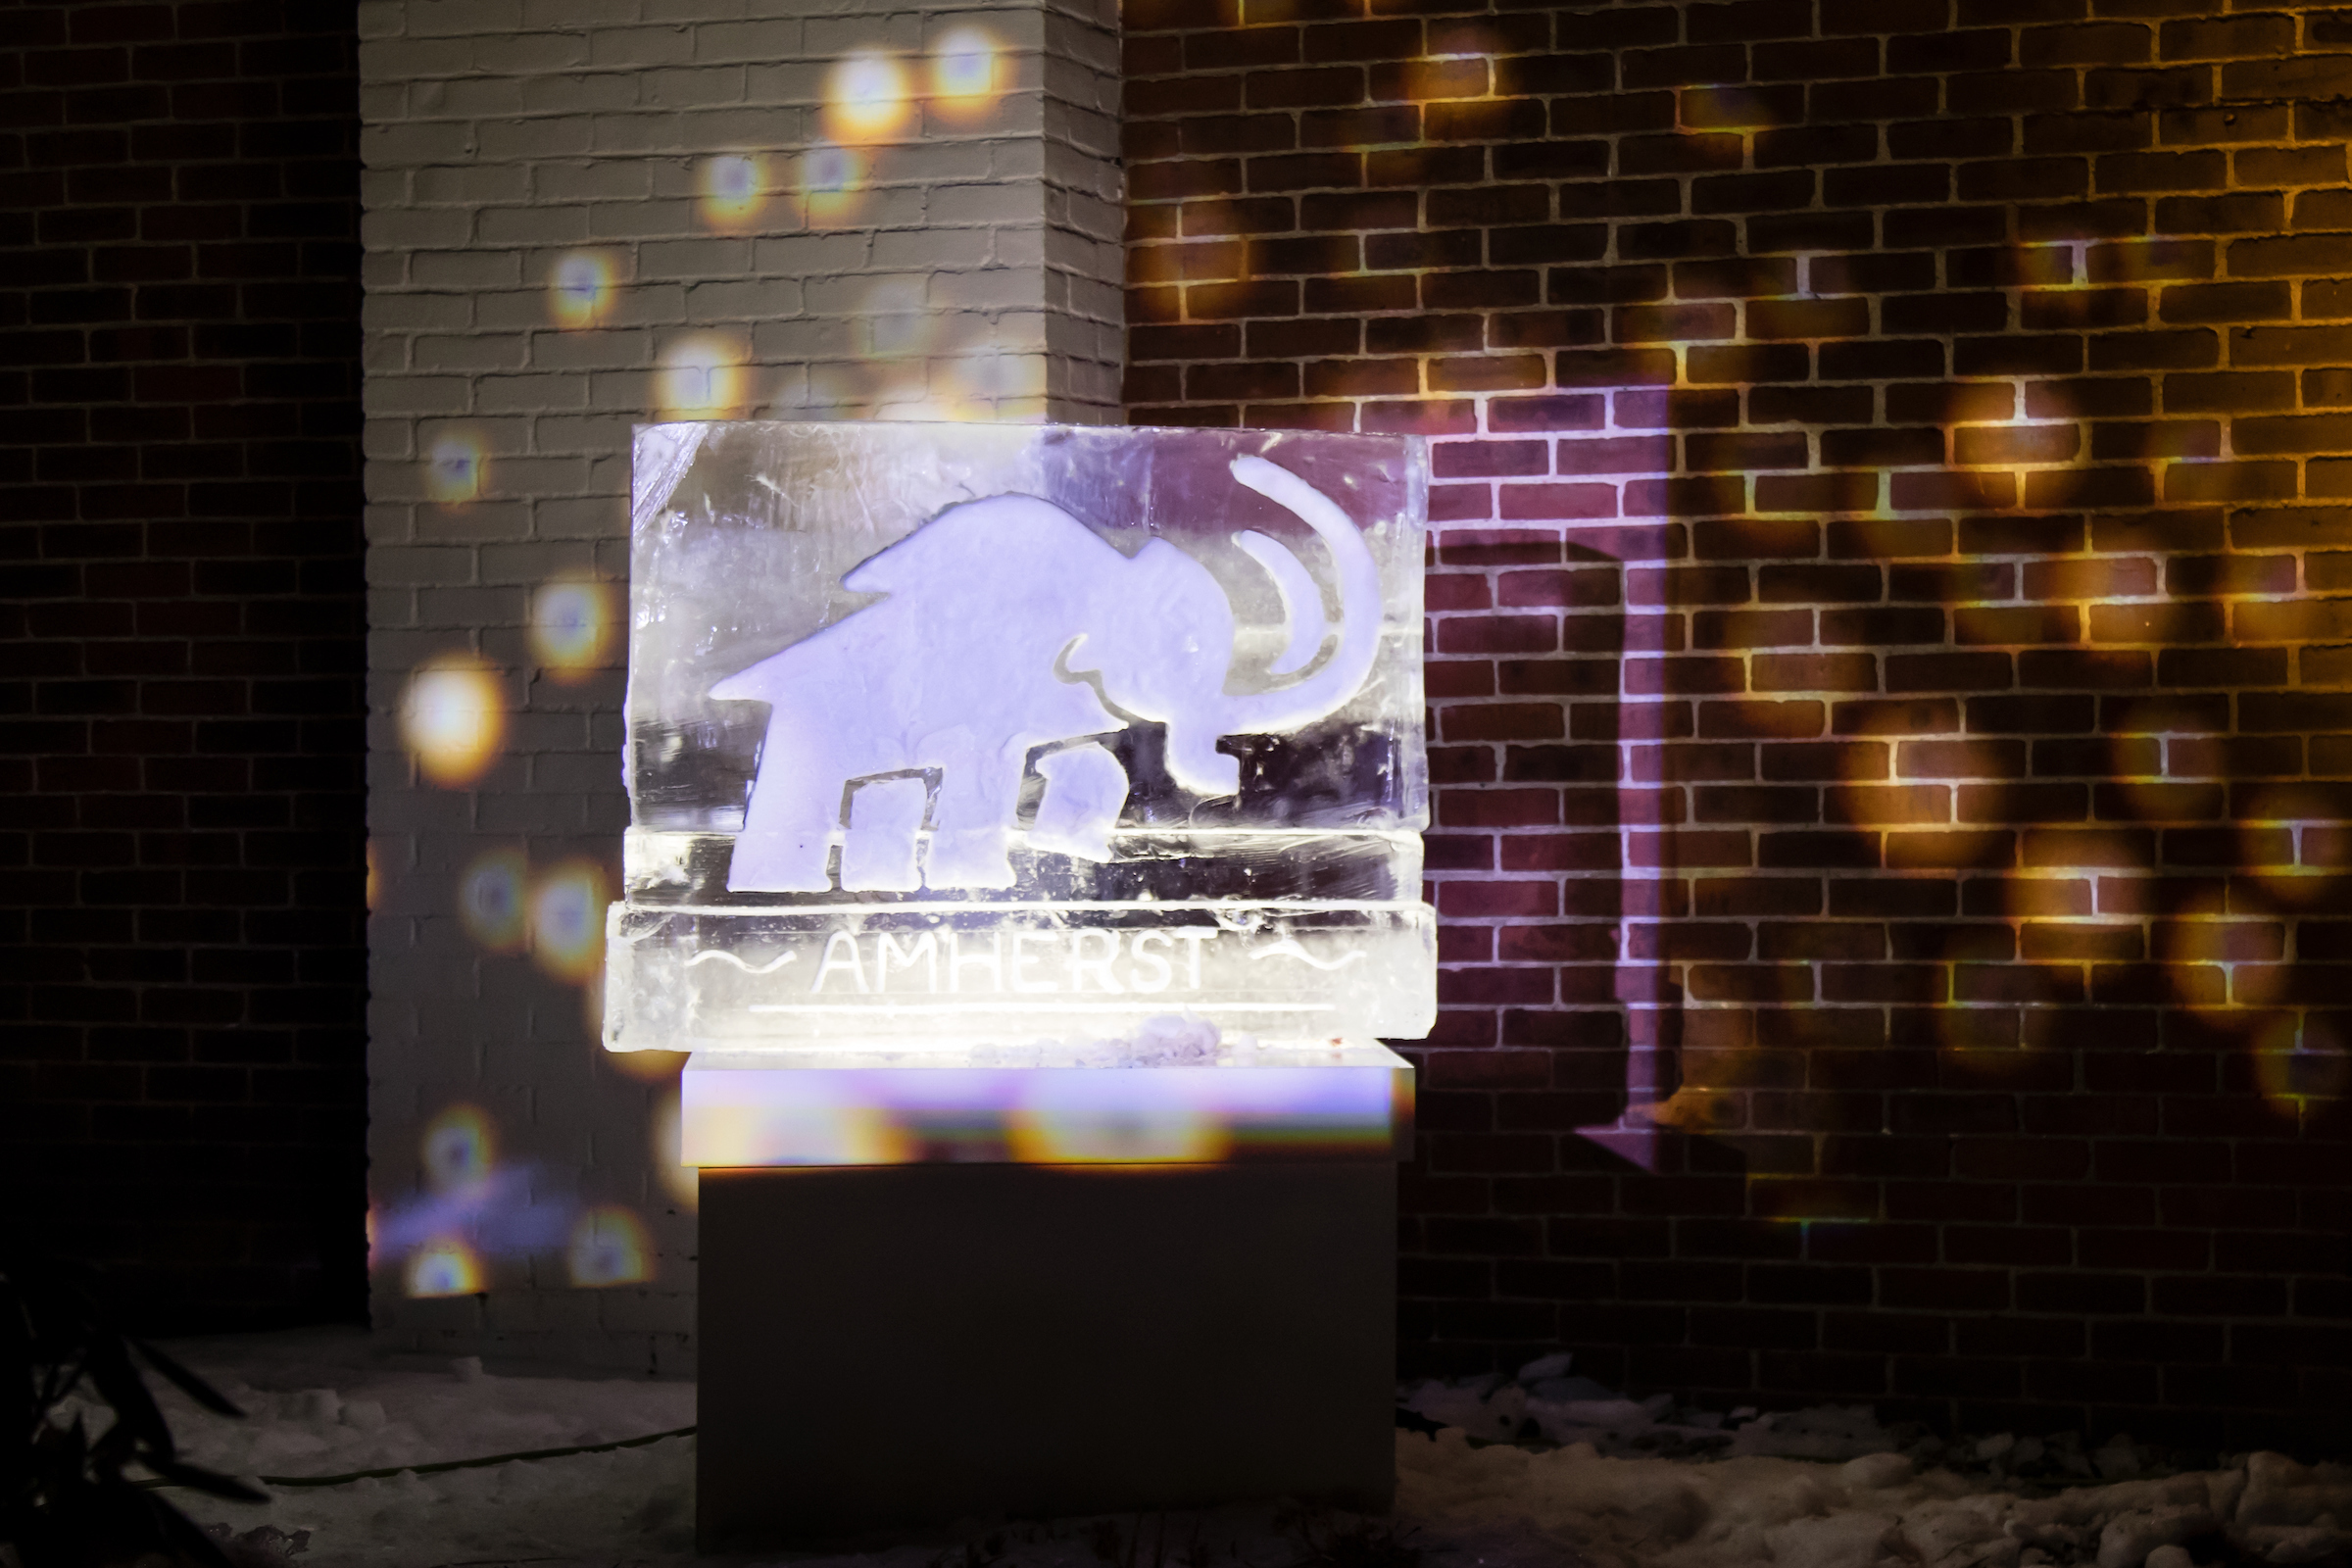 Ice sculpture of the Amherst Mammoth